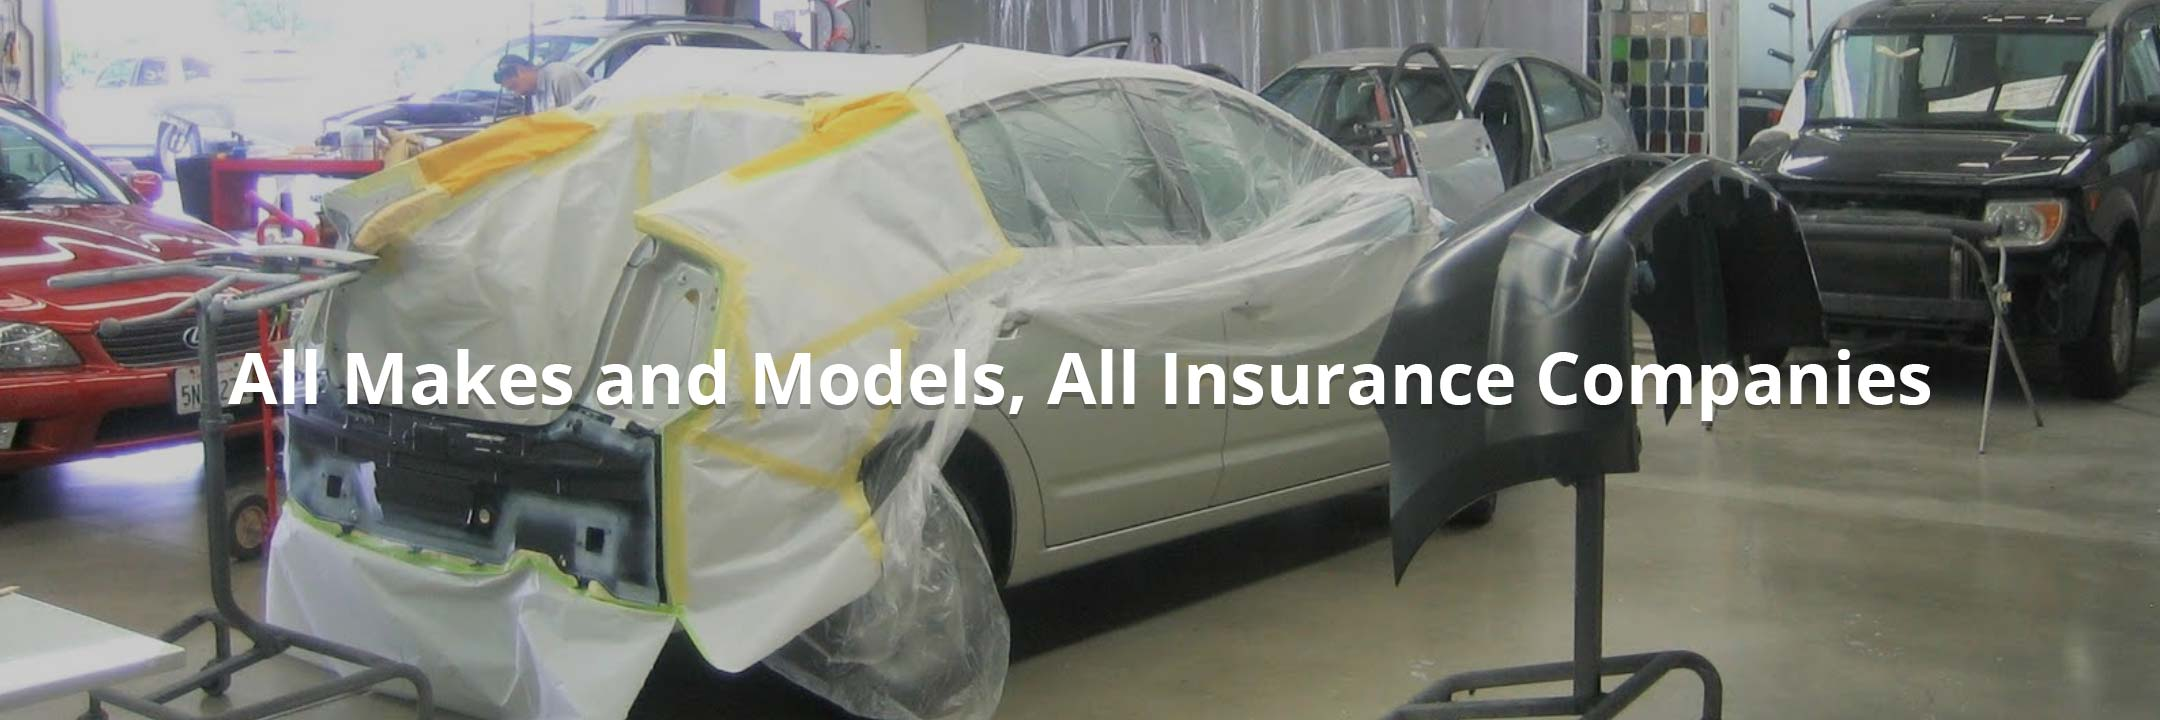 All Makes and Models, All Insurance Companies